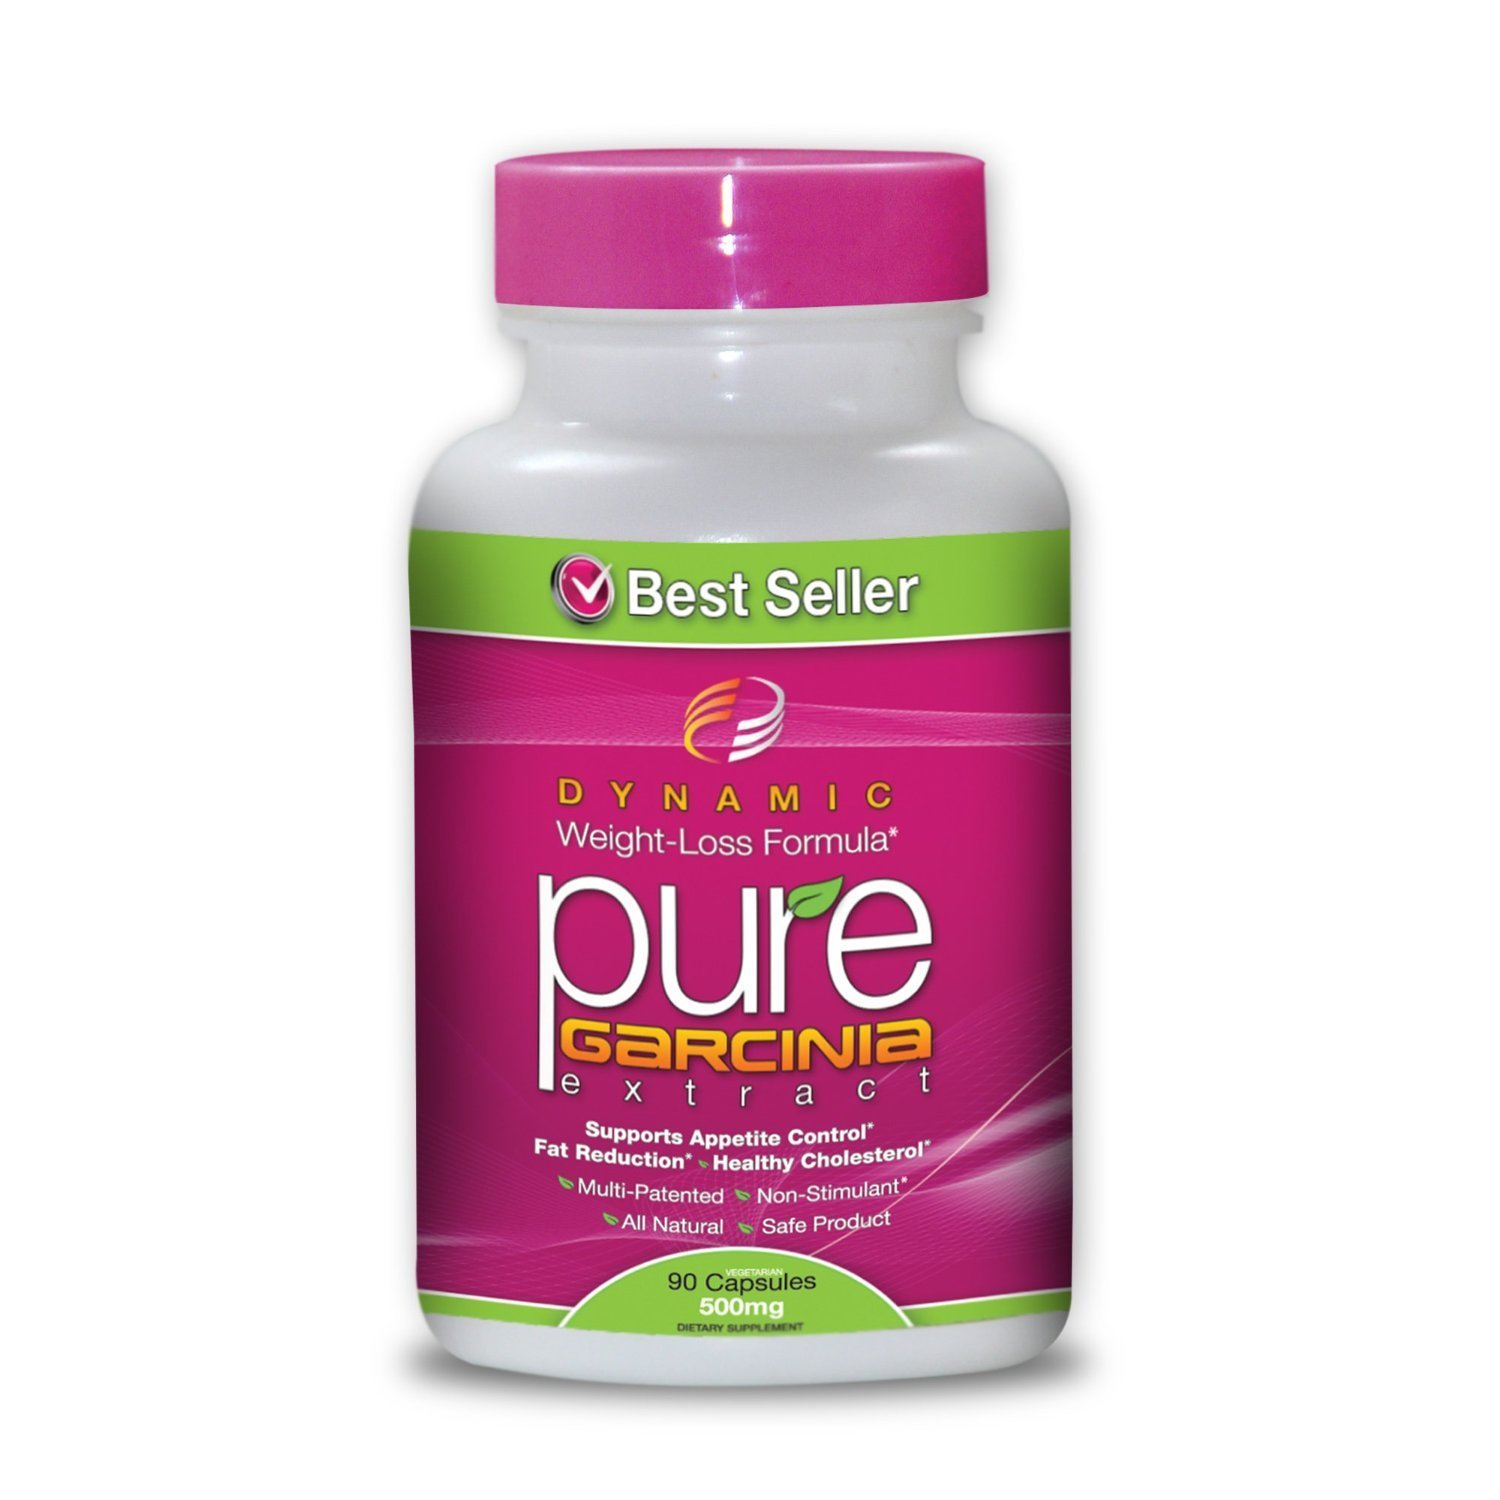 garcinia extract weight loss reviews